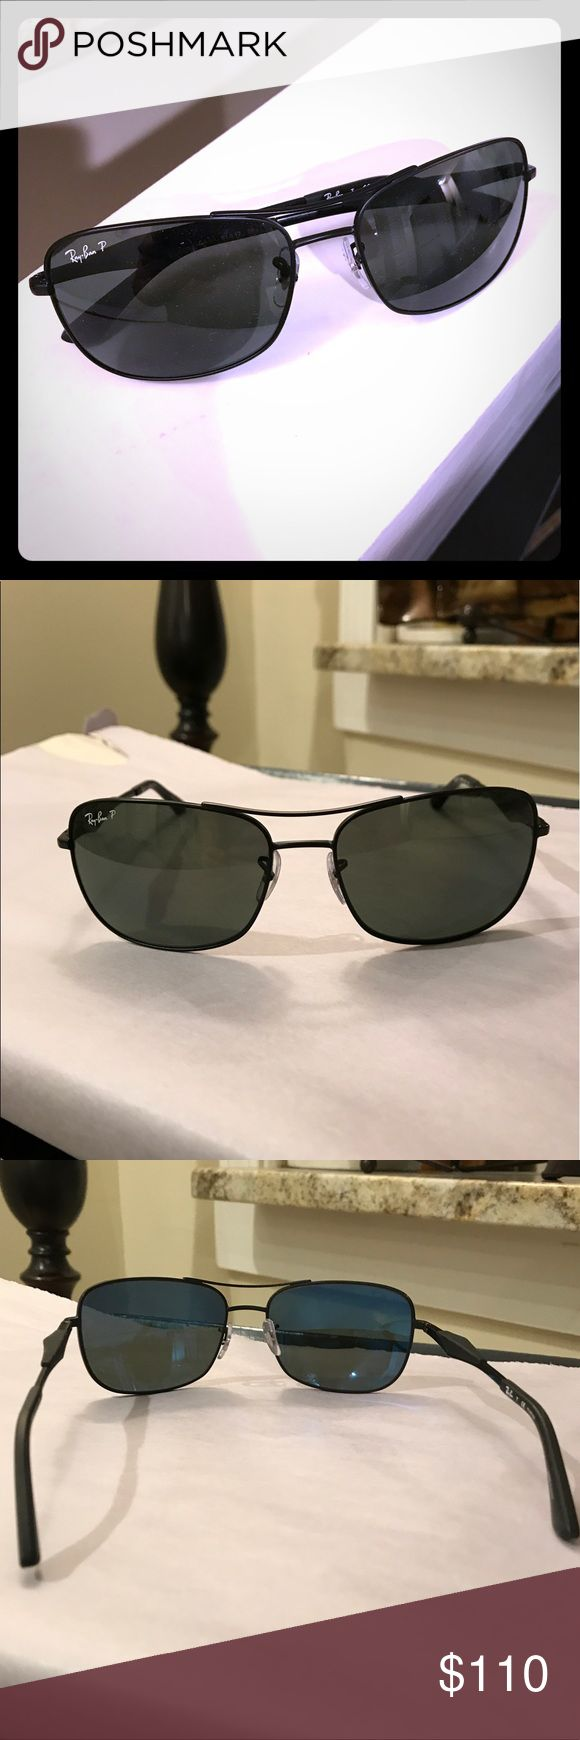 Polarized ray bans! New nwt, very nice sunglasses Ray bans, mens , polarized sunglasses new nwt Ray-Ban Accessories Sunglasses